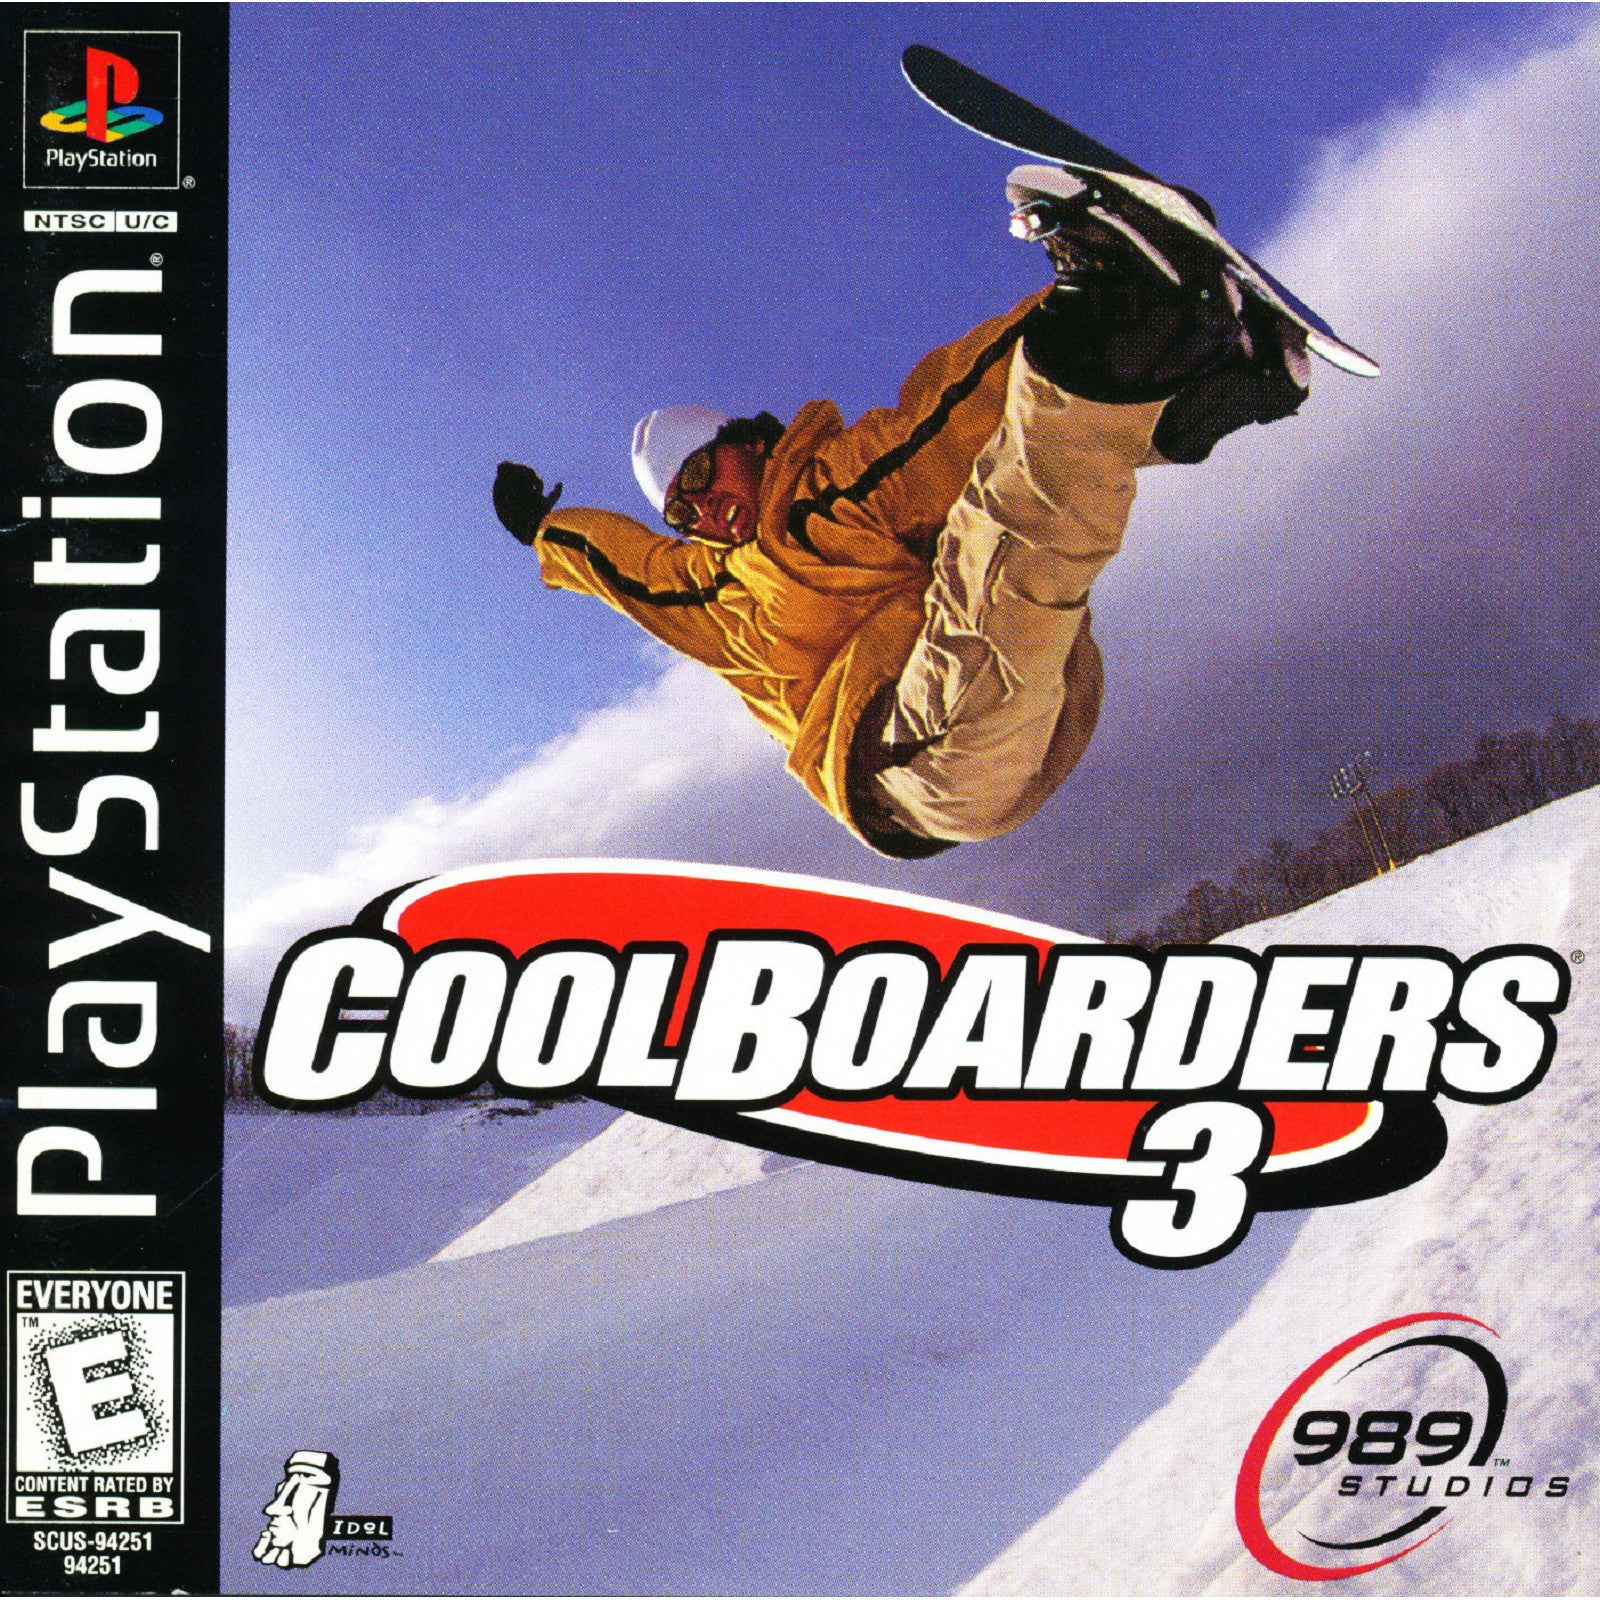 Cool Boarders 3 for PlayStation 1